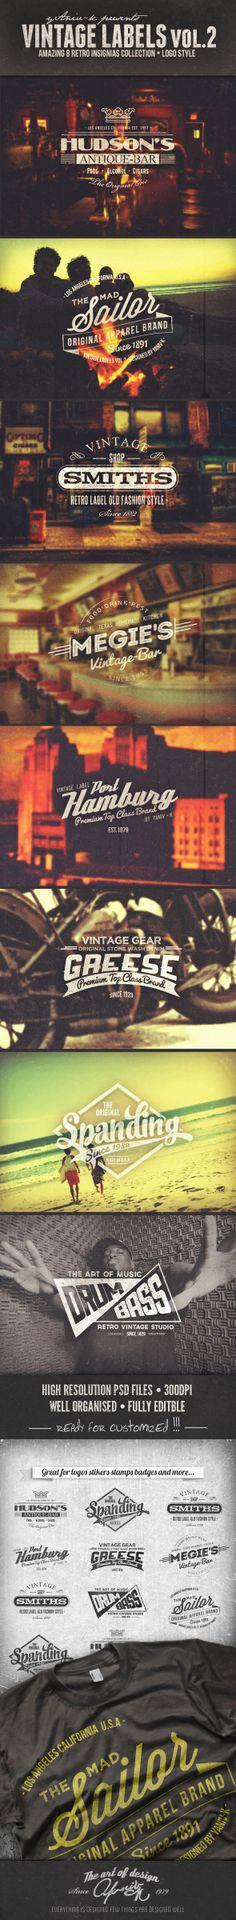 Vintage Labels Vol.2 by yaniv kamak, via Behance